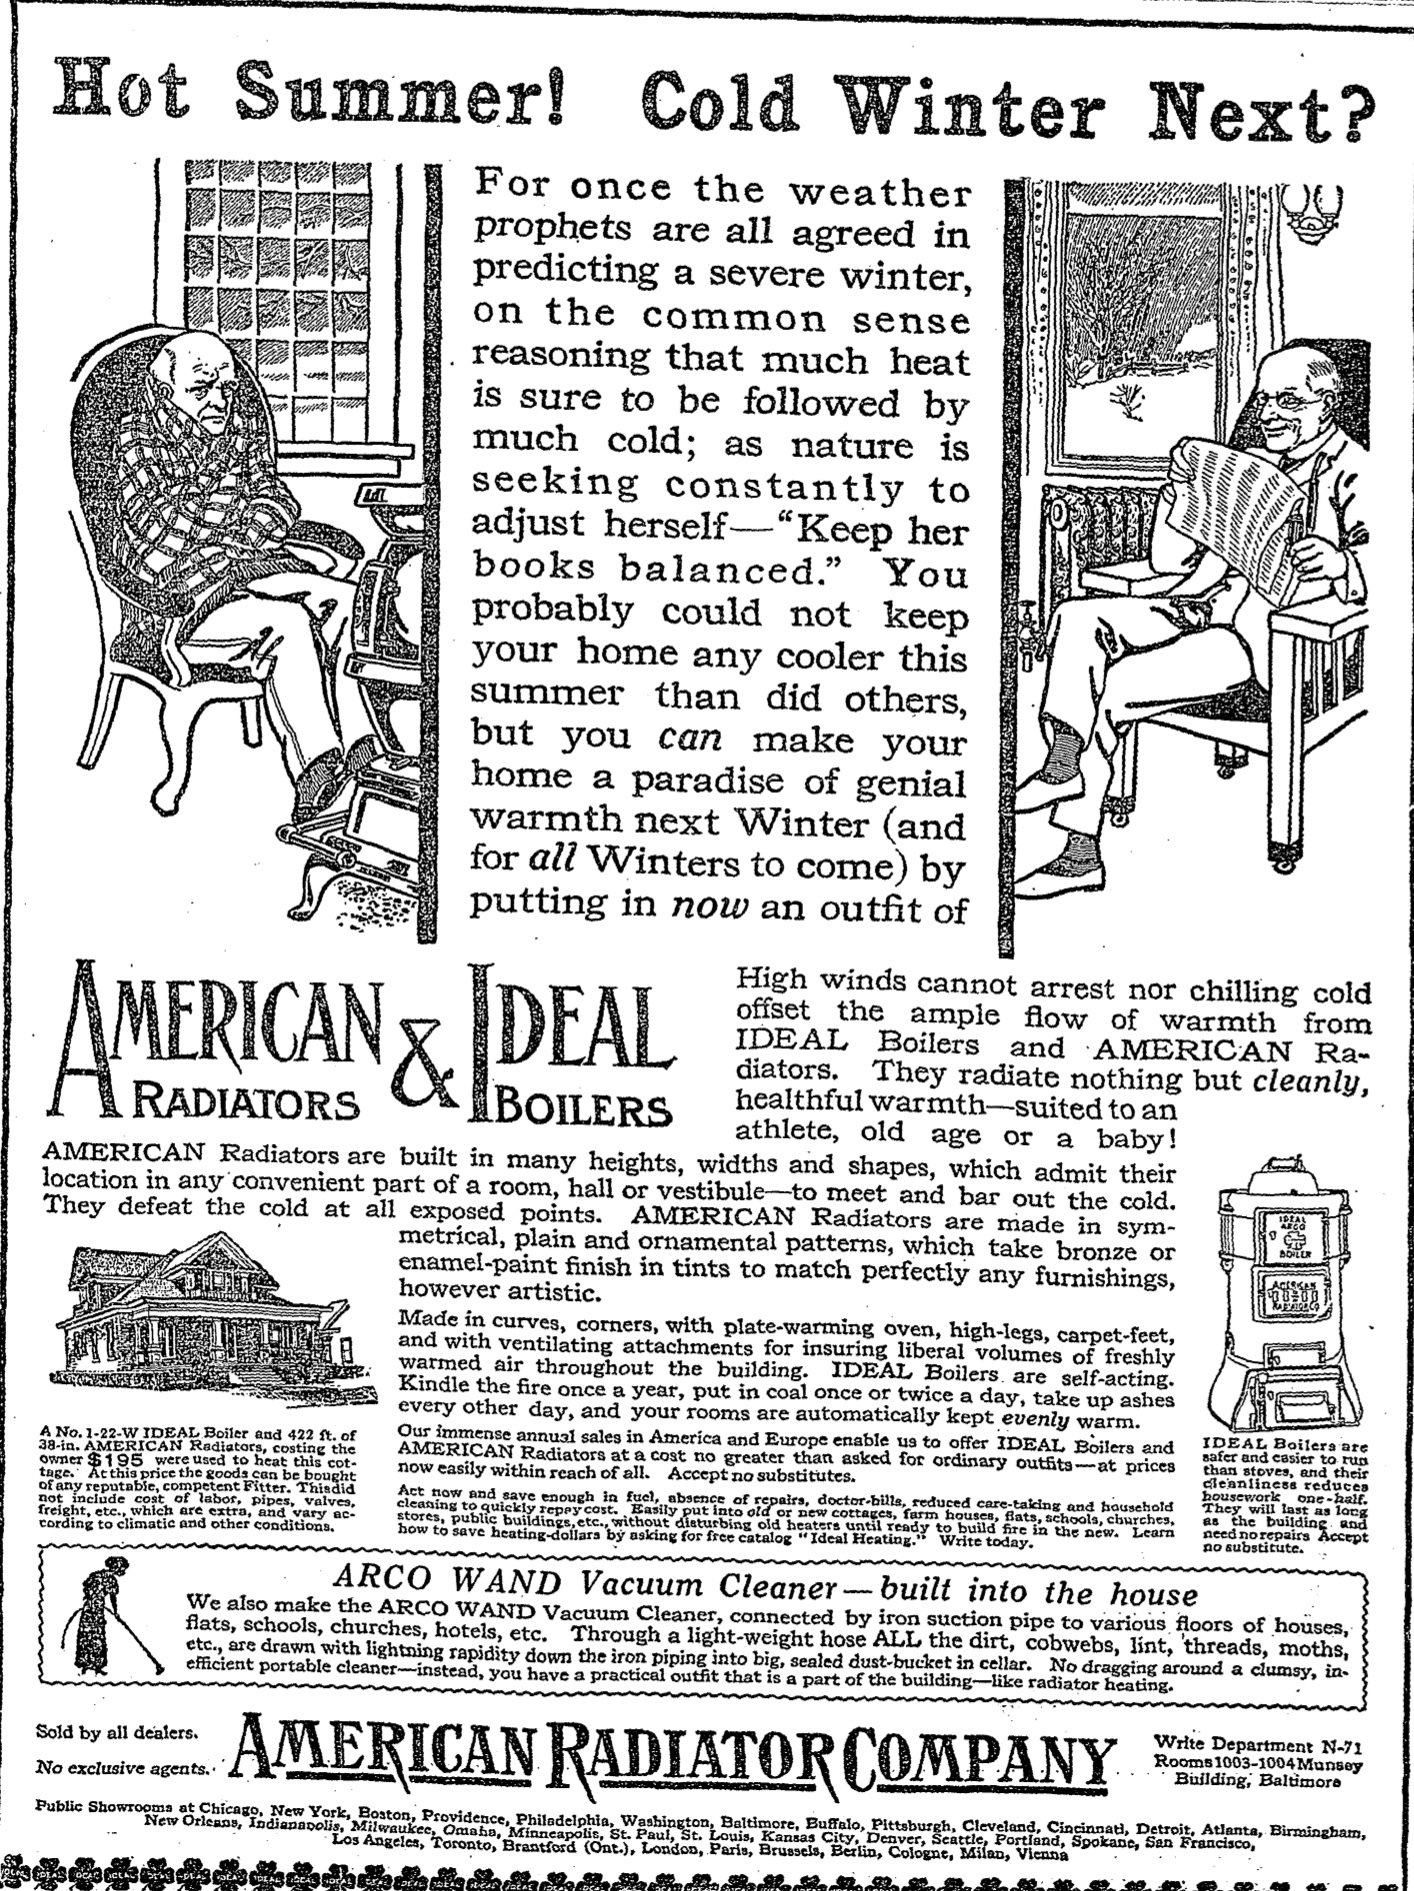 Old Ad for American Radiator Company